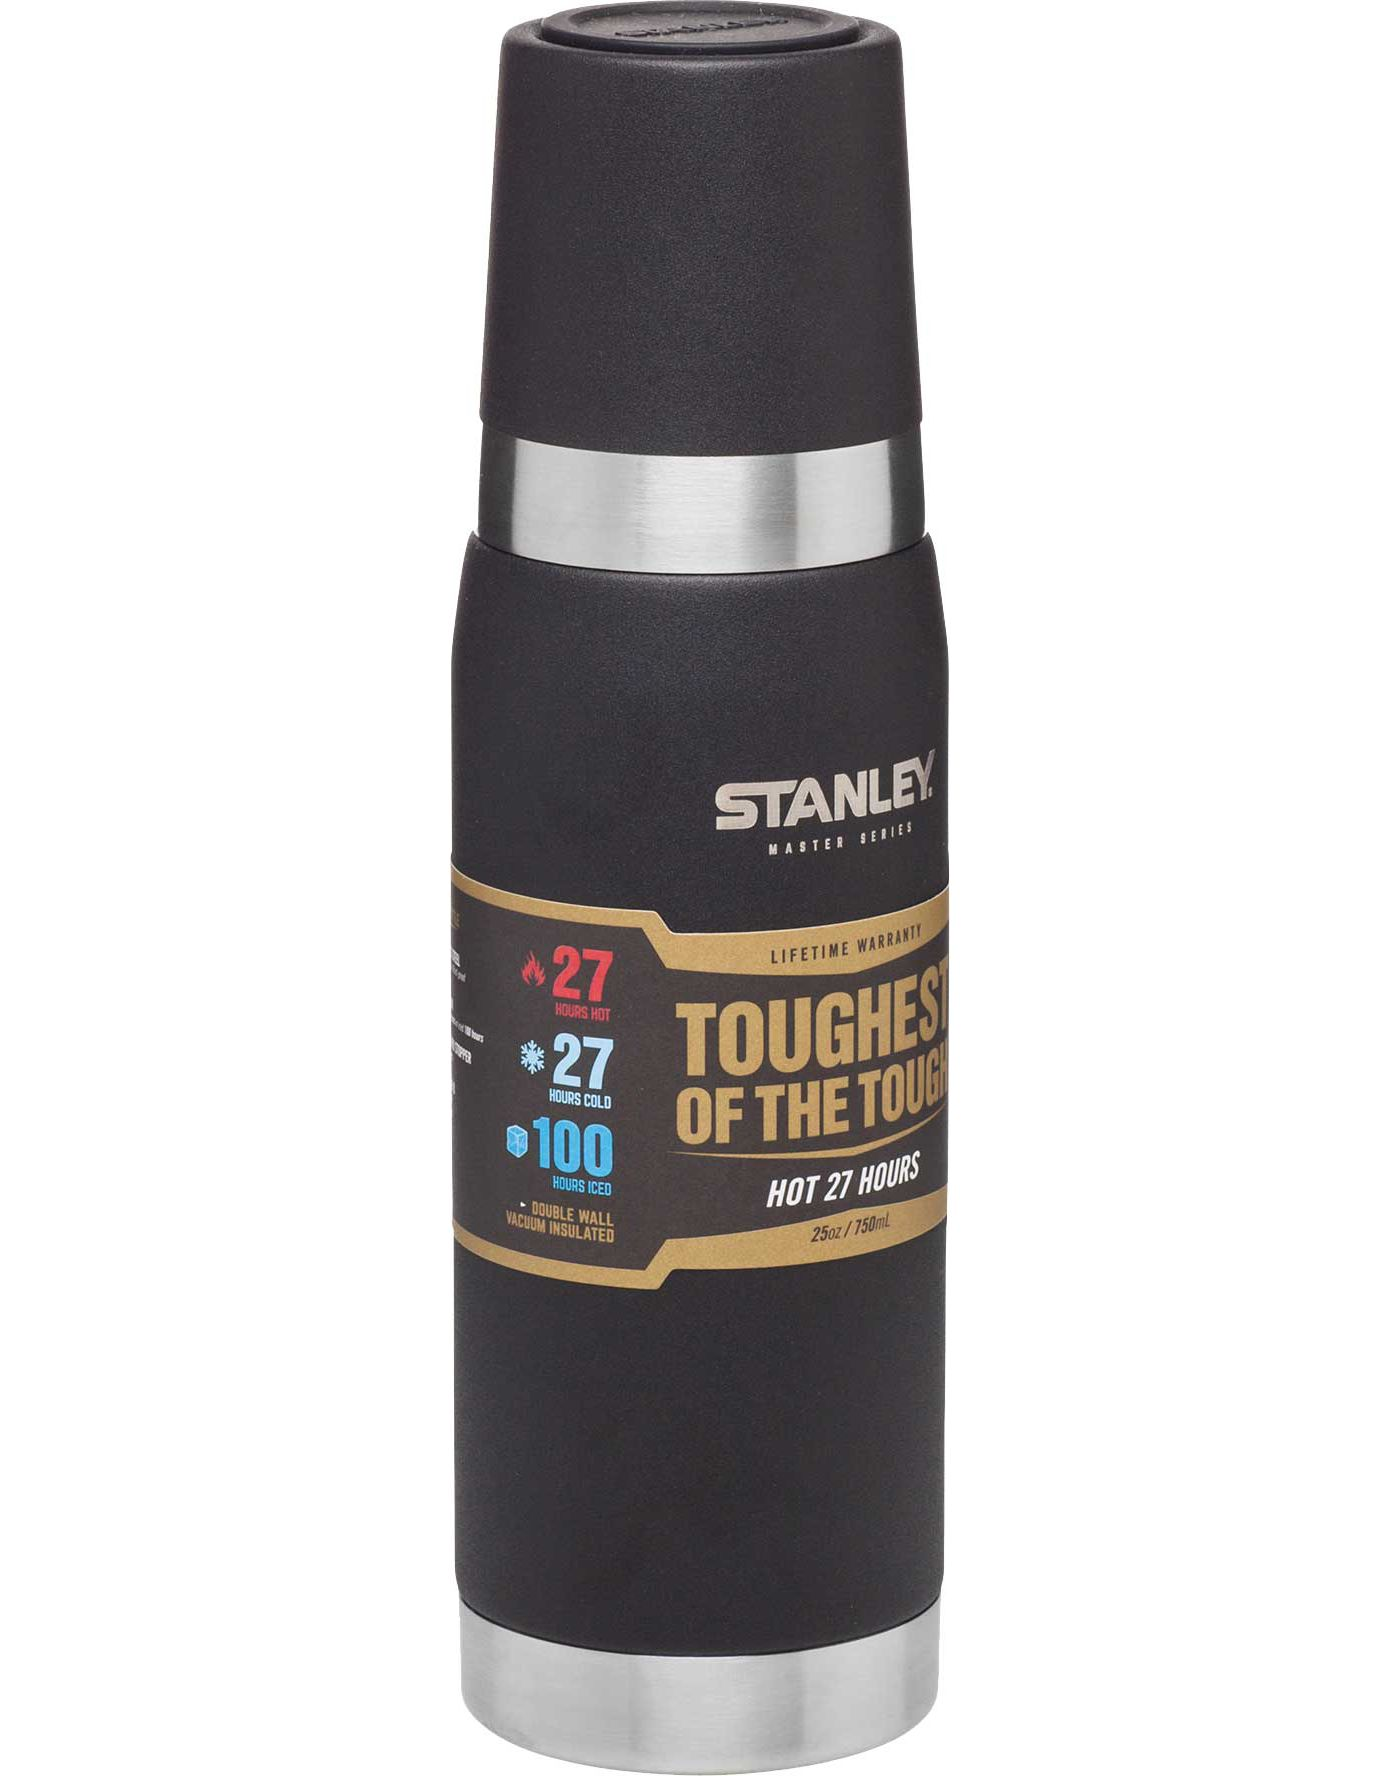 Stanley 25 oz. Master Series Vacuum Bottle